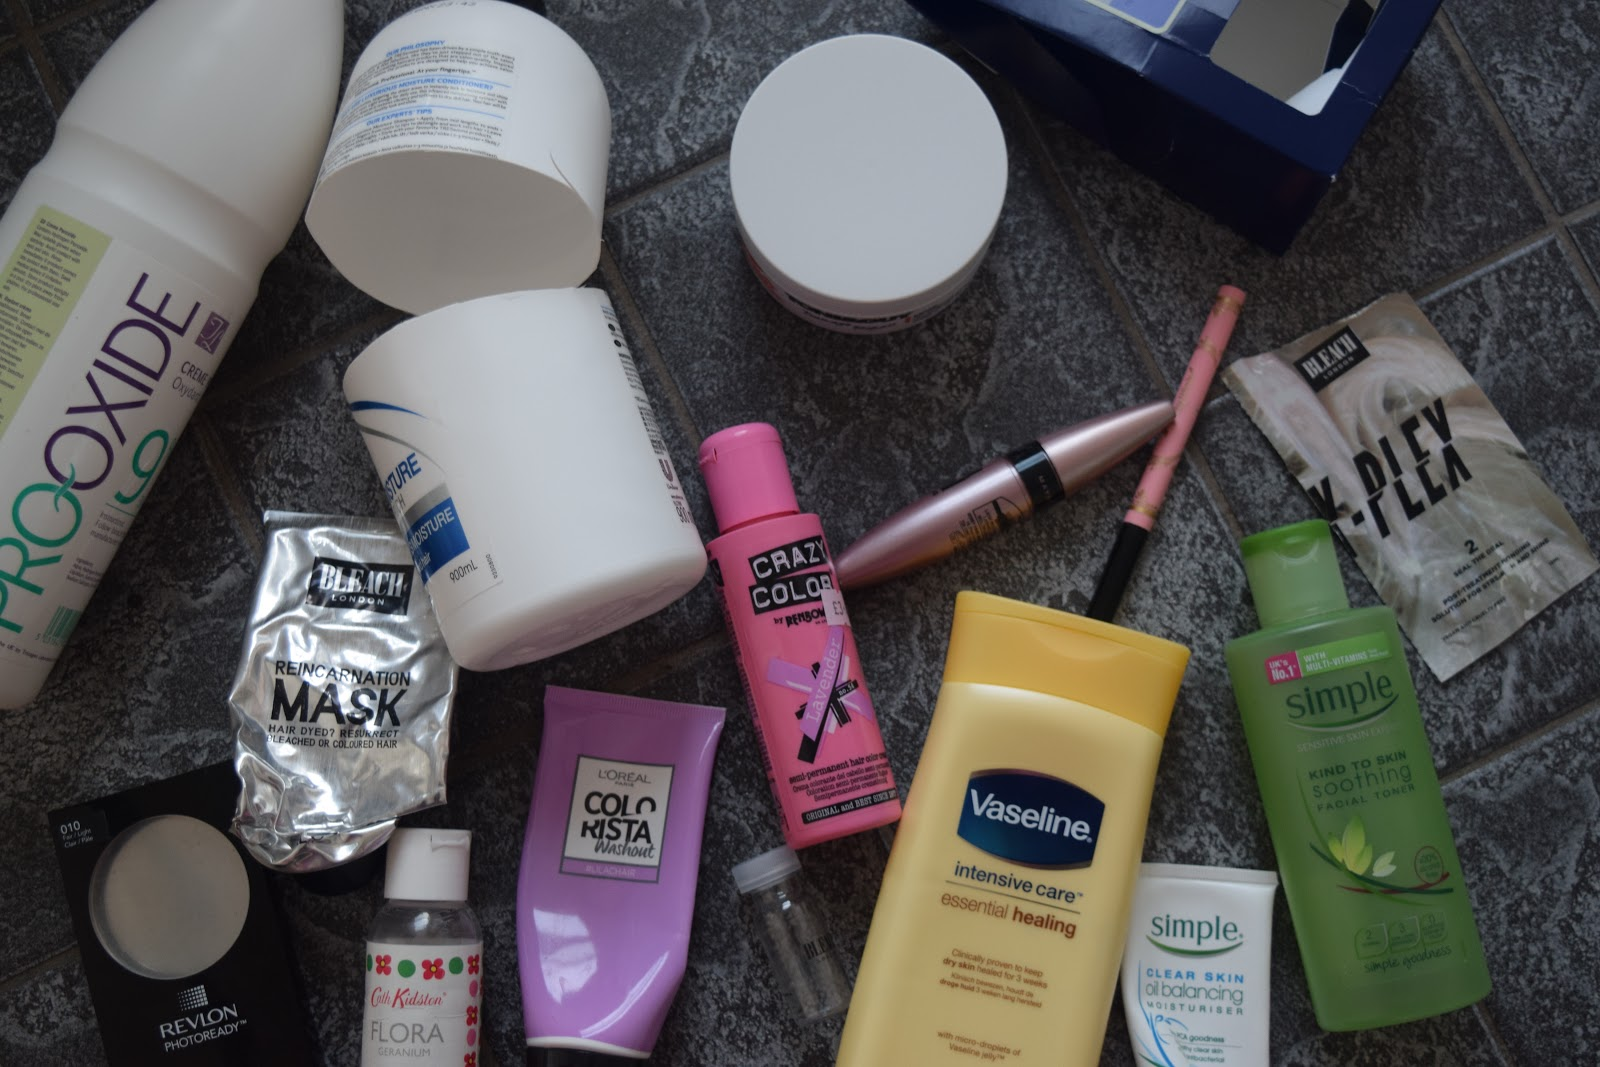 empty beauty products